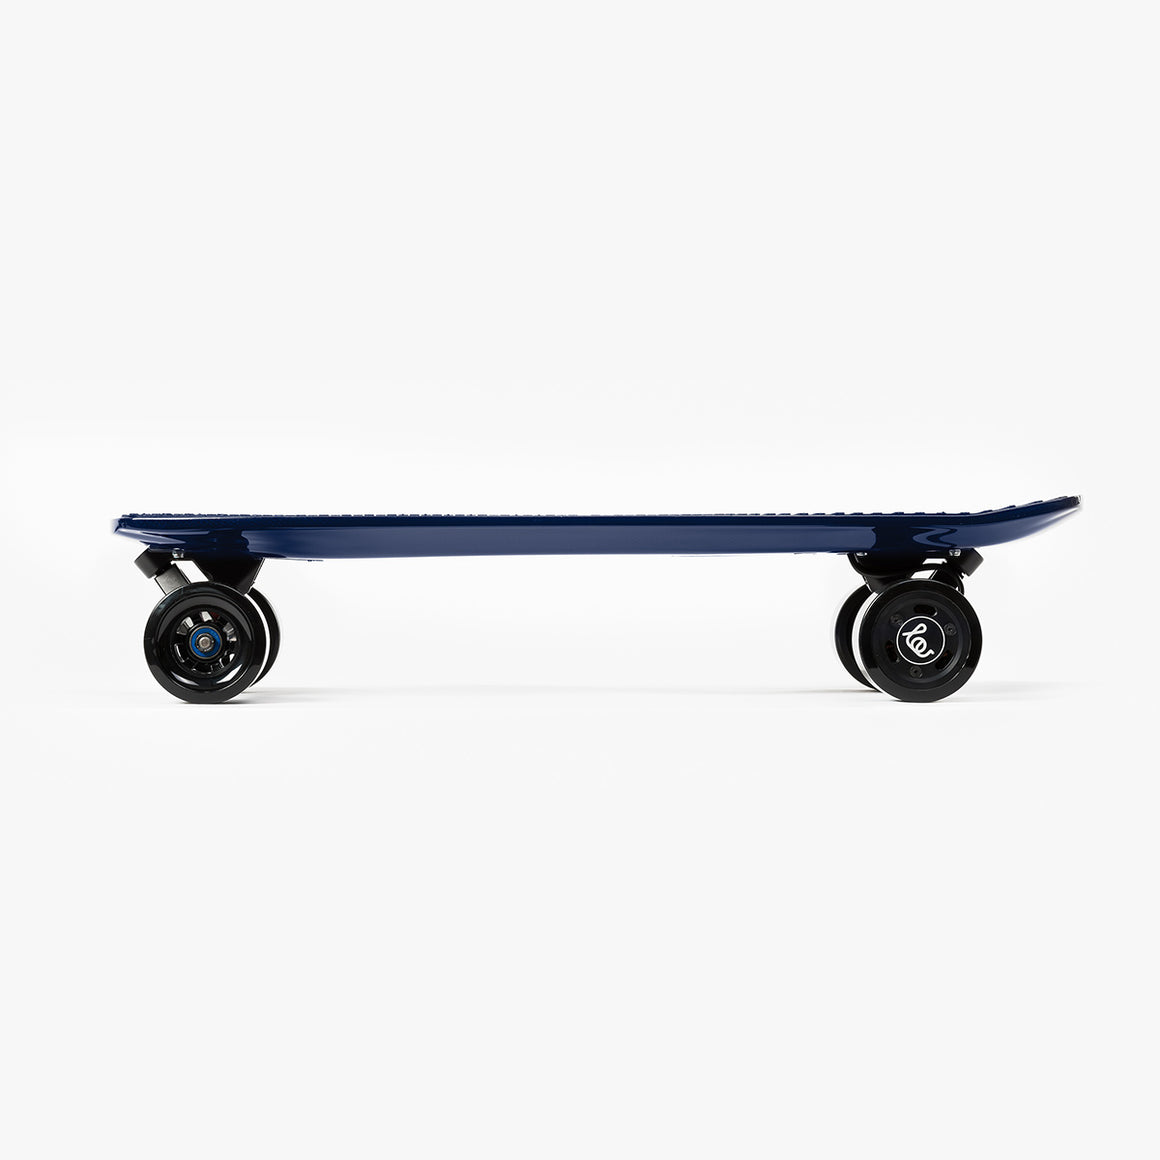 "SoFlow LOU Board 3.0 Carbon Fiber Electric Skateboard - 3000W Dual Hub Motor - 22 MPH 15 Mile Range - 25"" Deck - 105Wh Rechargeable Lithium-ion Battery - Bluetooth Wireless Remote Control - ElectricSkateHQ"